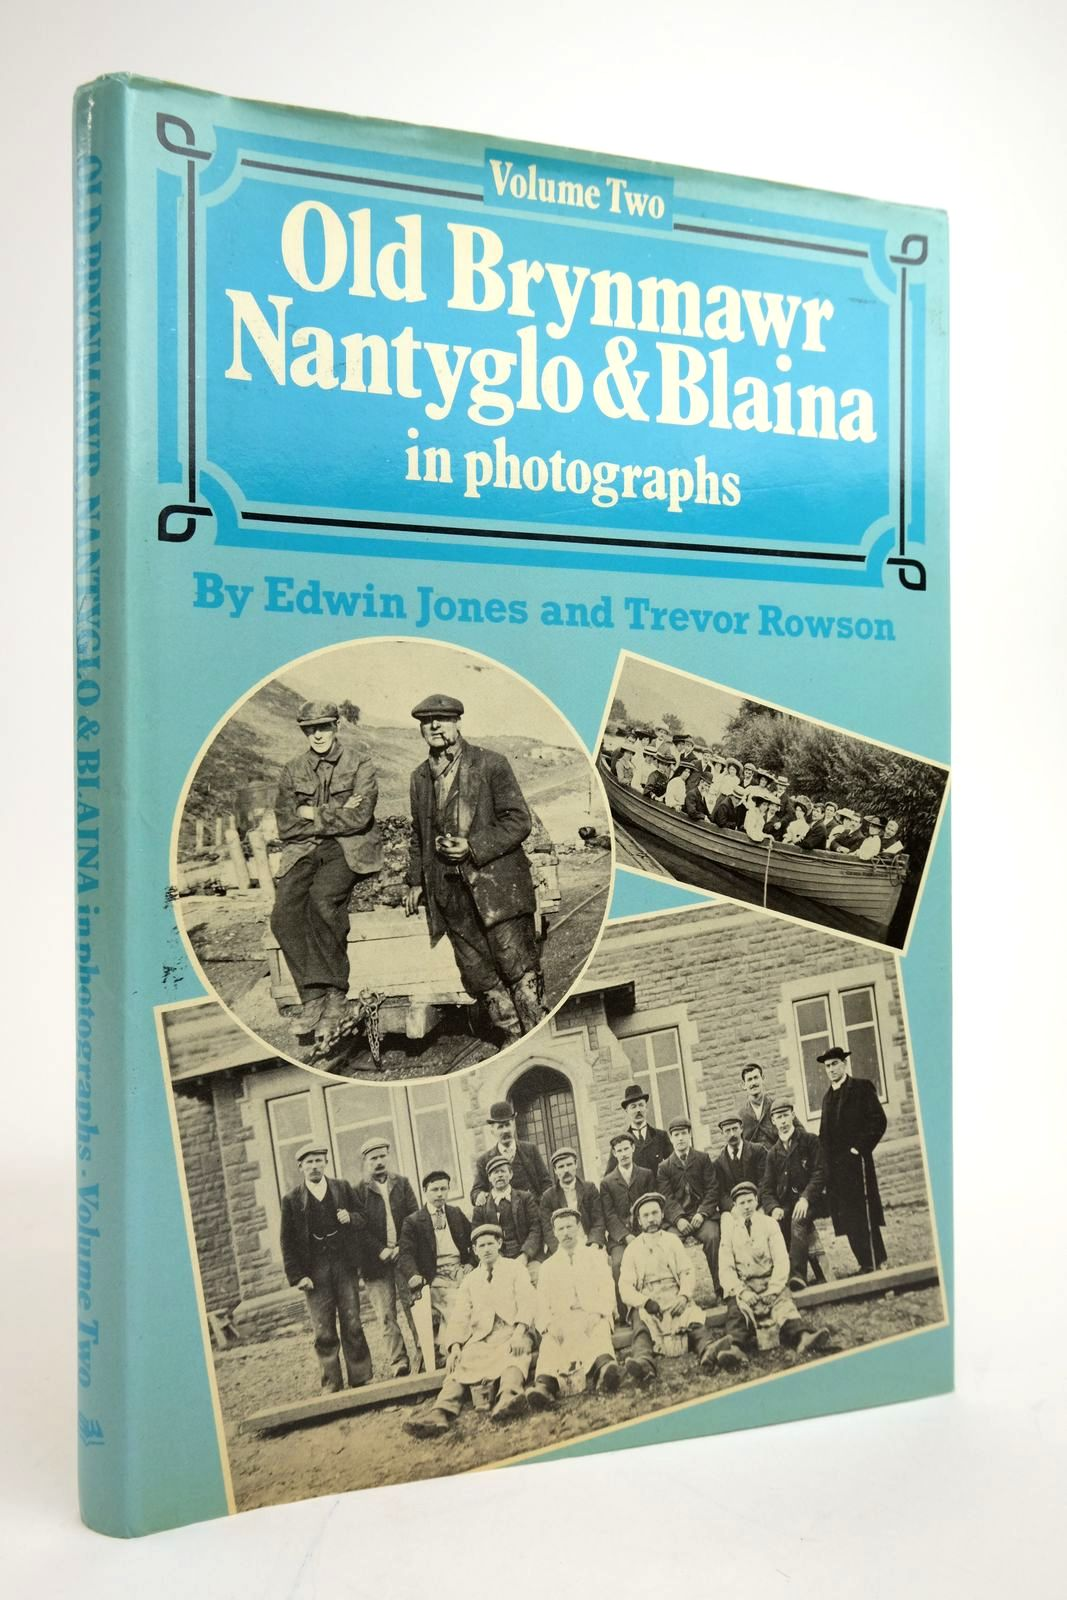 Photo of OLD BRYNMAWR, NANTYGLO AND BLAINA IN PHOTOGRAPHS VOLUME TWO- Stock Number: 2135078